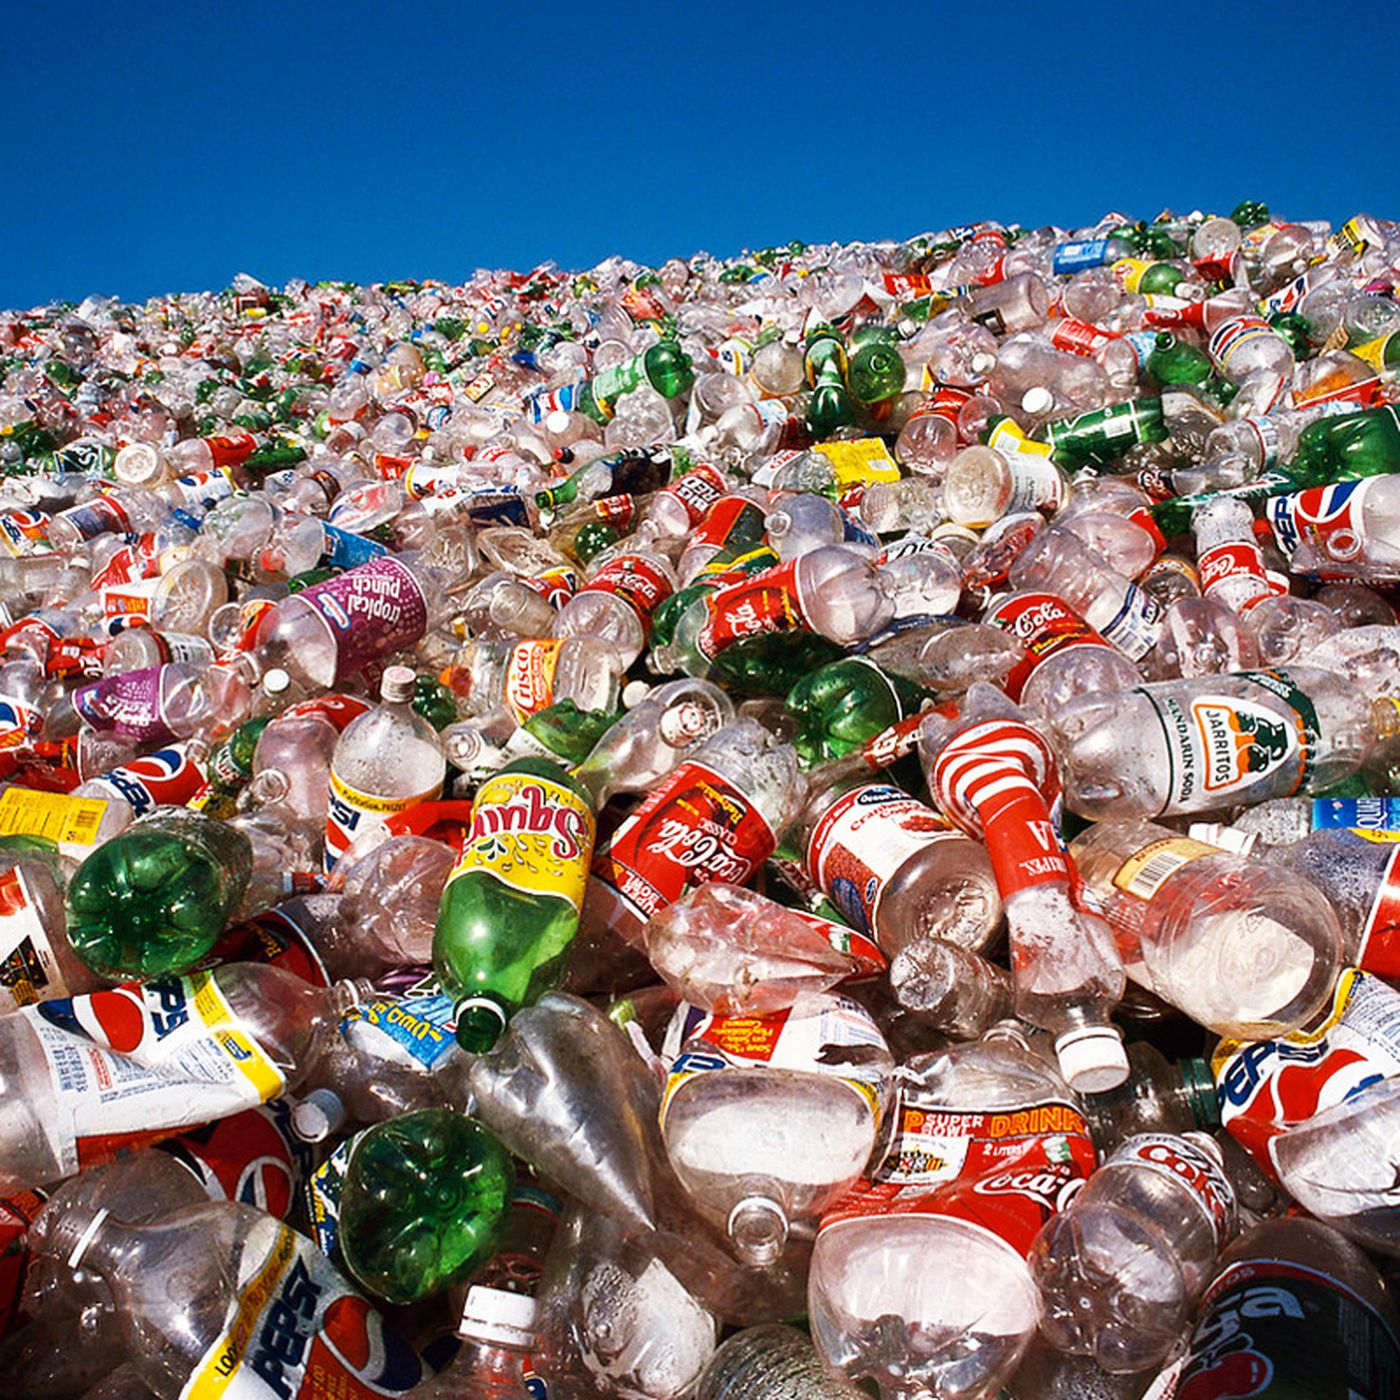 China's plastic waste ban will leave 111 million tons of